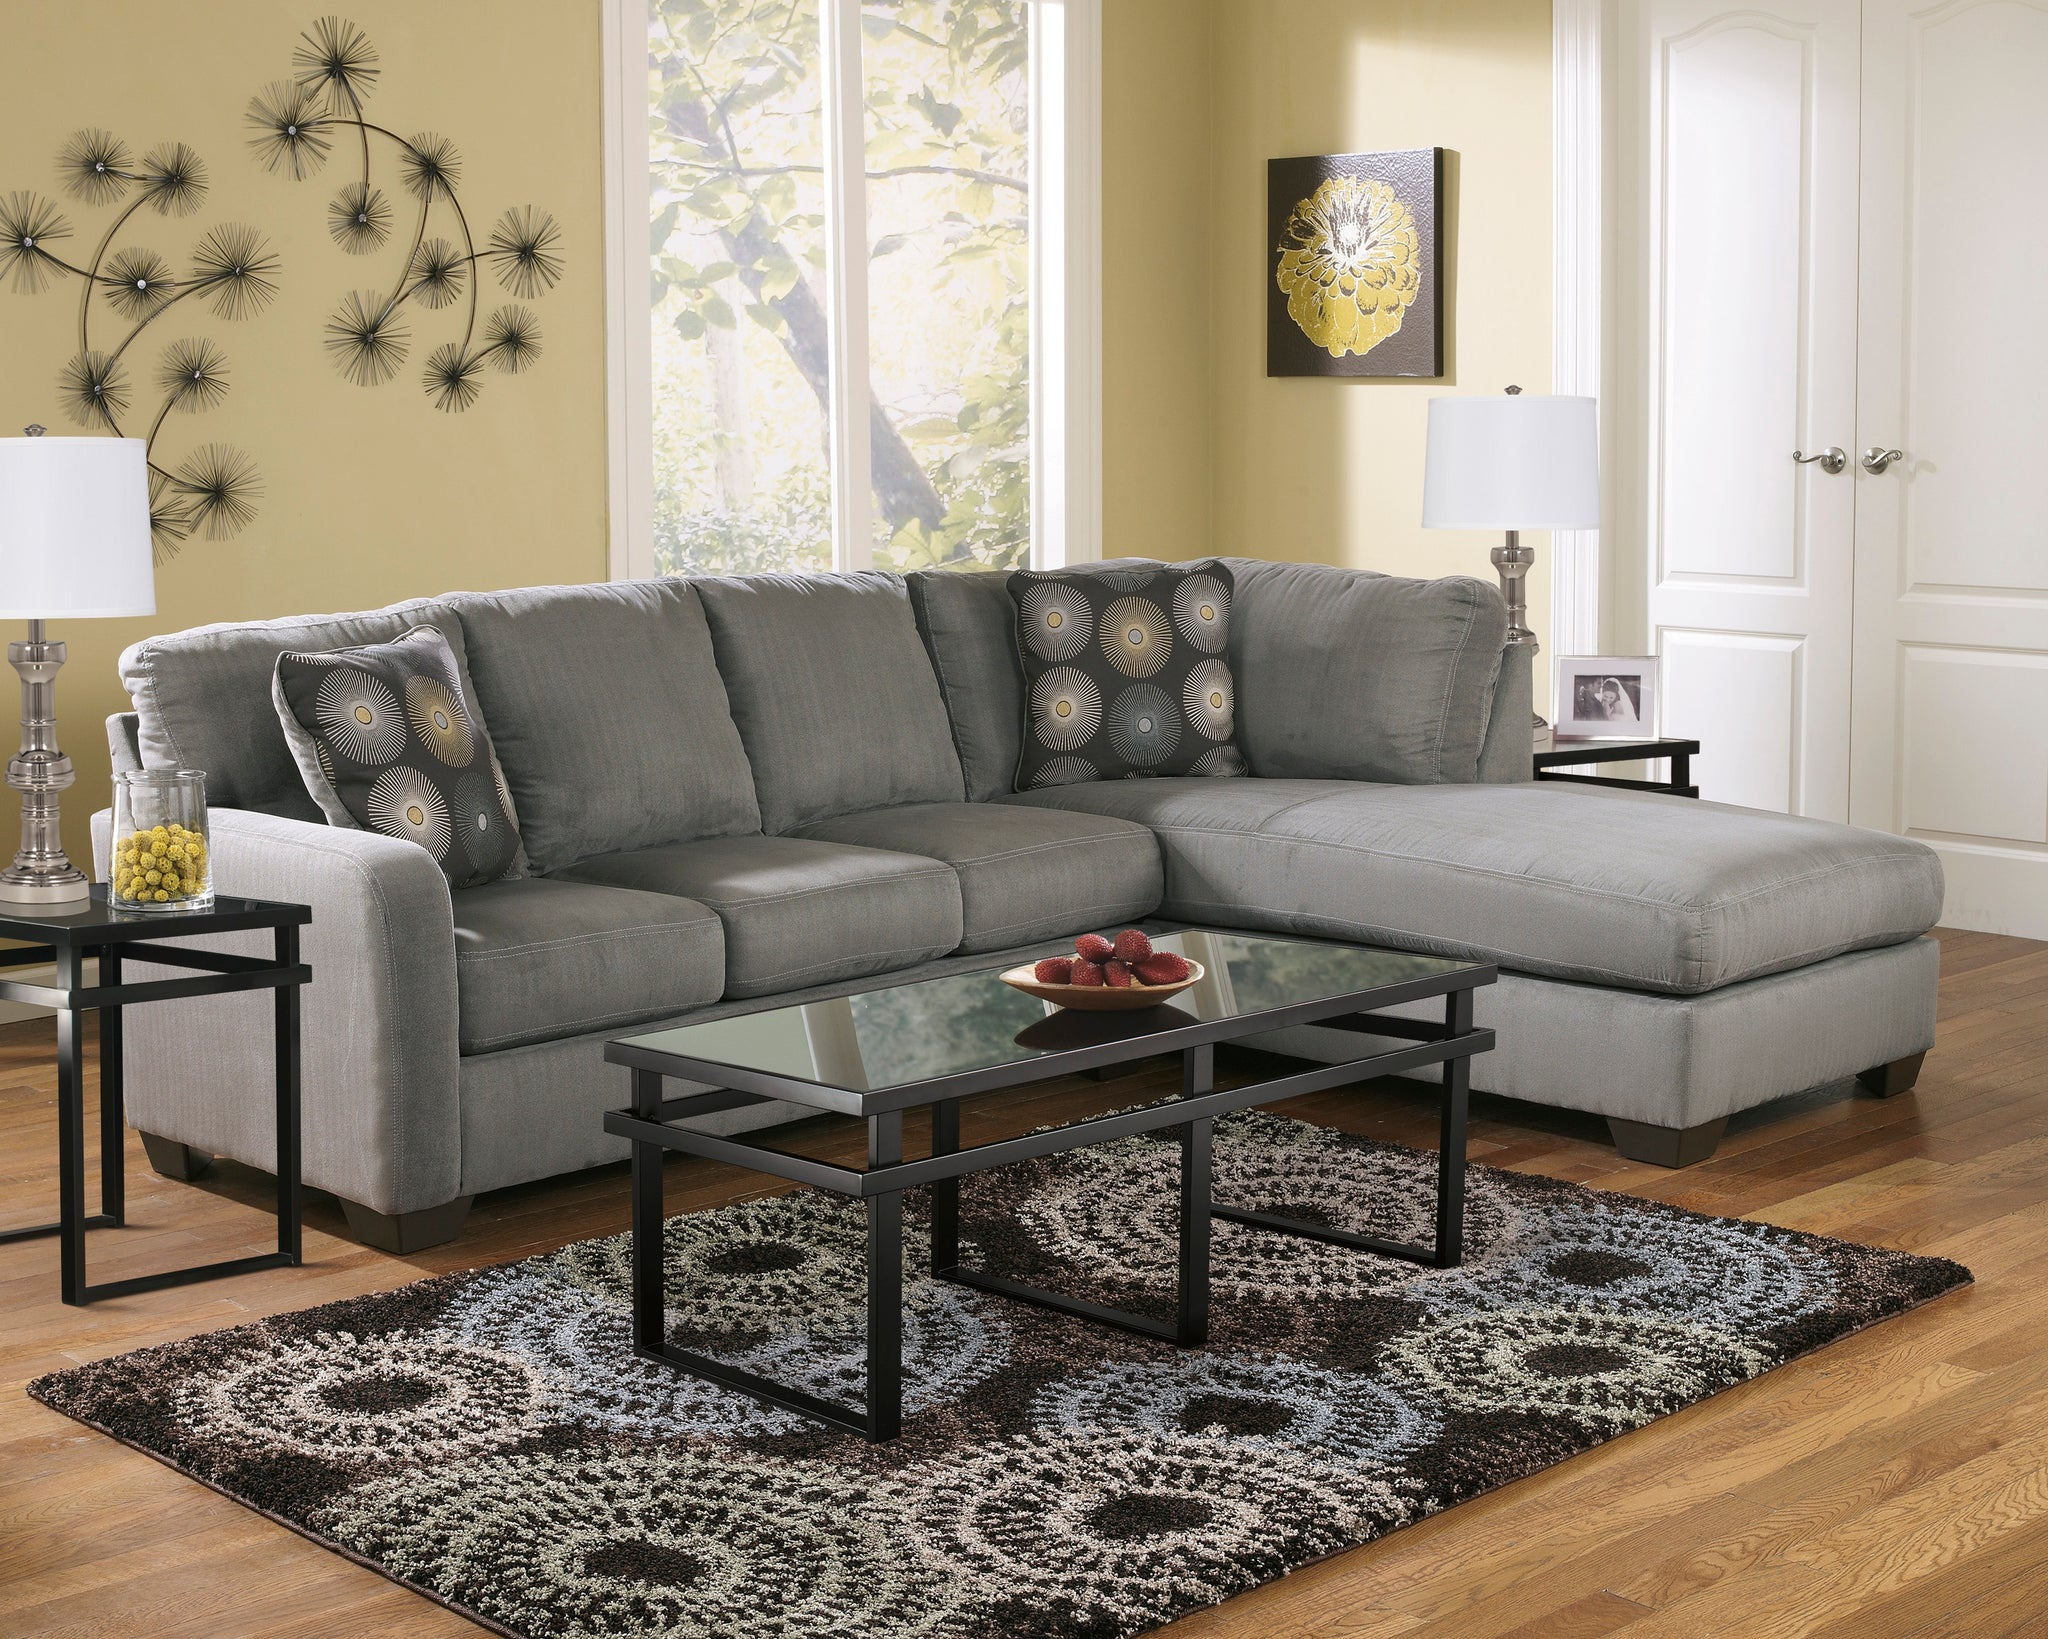 Miraculous Zella Charcoal Right Arm Facing Sectional Pdpeps Interior Chair Design Pdpepsorg